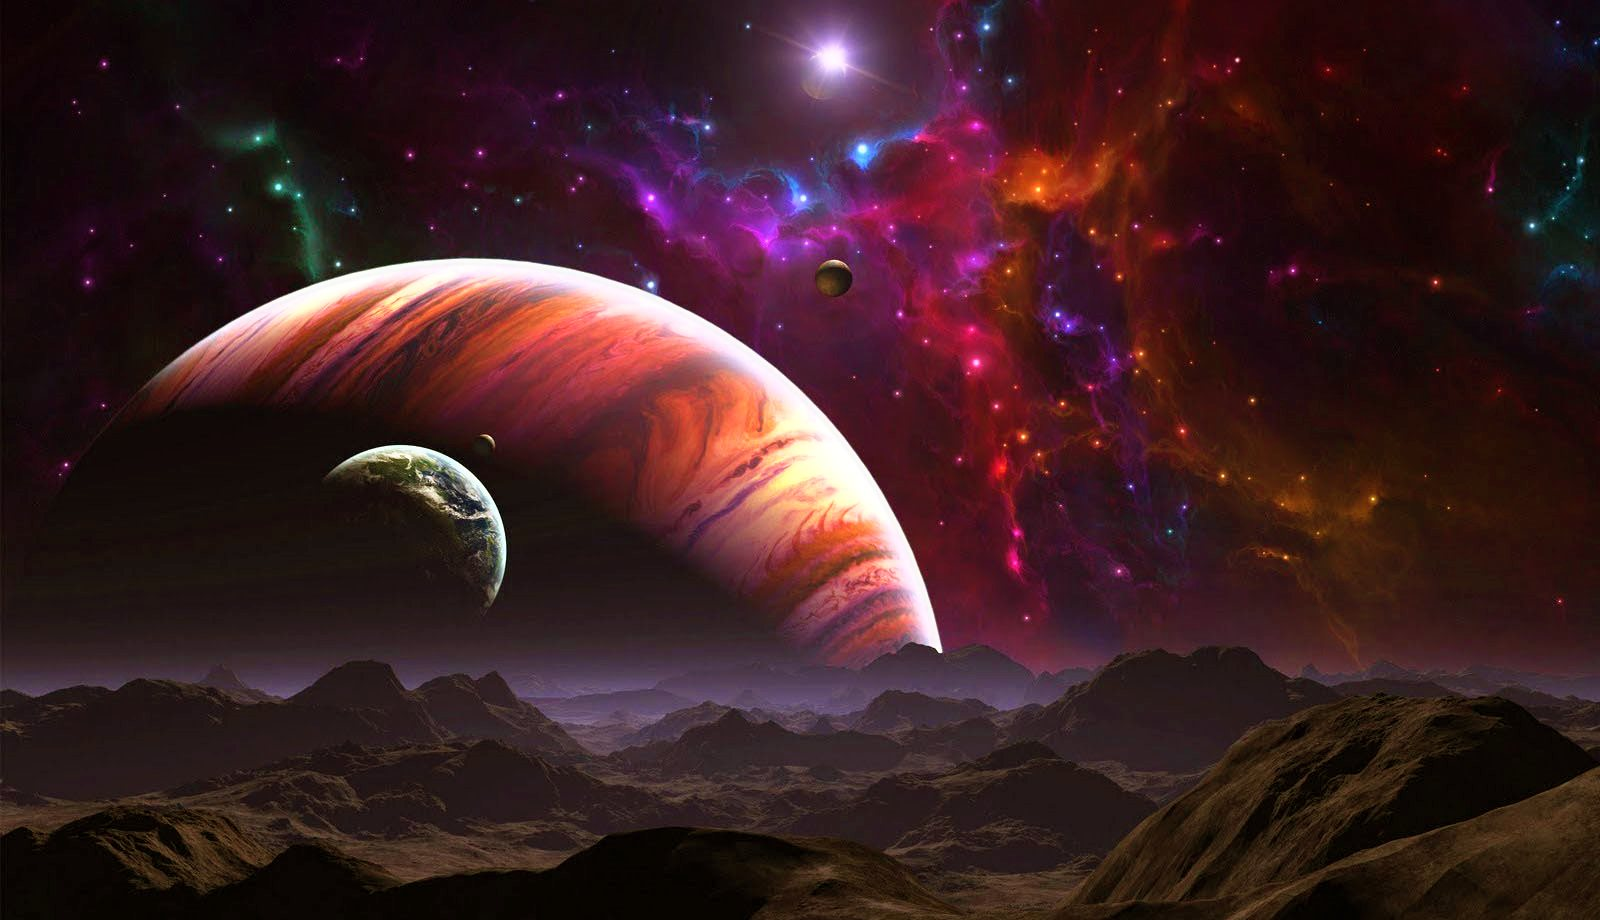 Exoplanet Exploration</a><br> by <a href='/profile/Bling-King/'>Bling King</a>